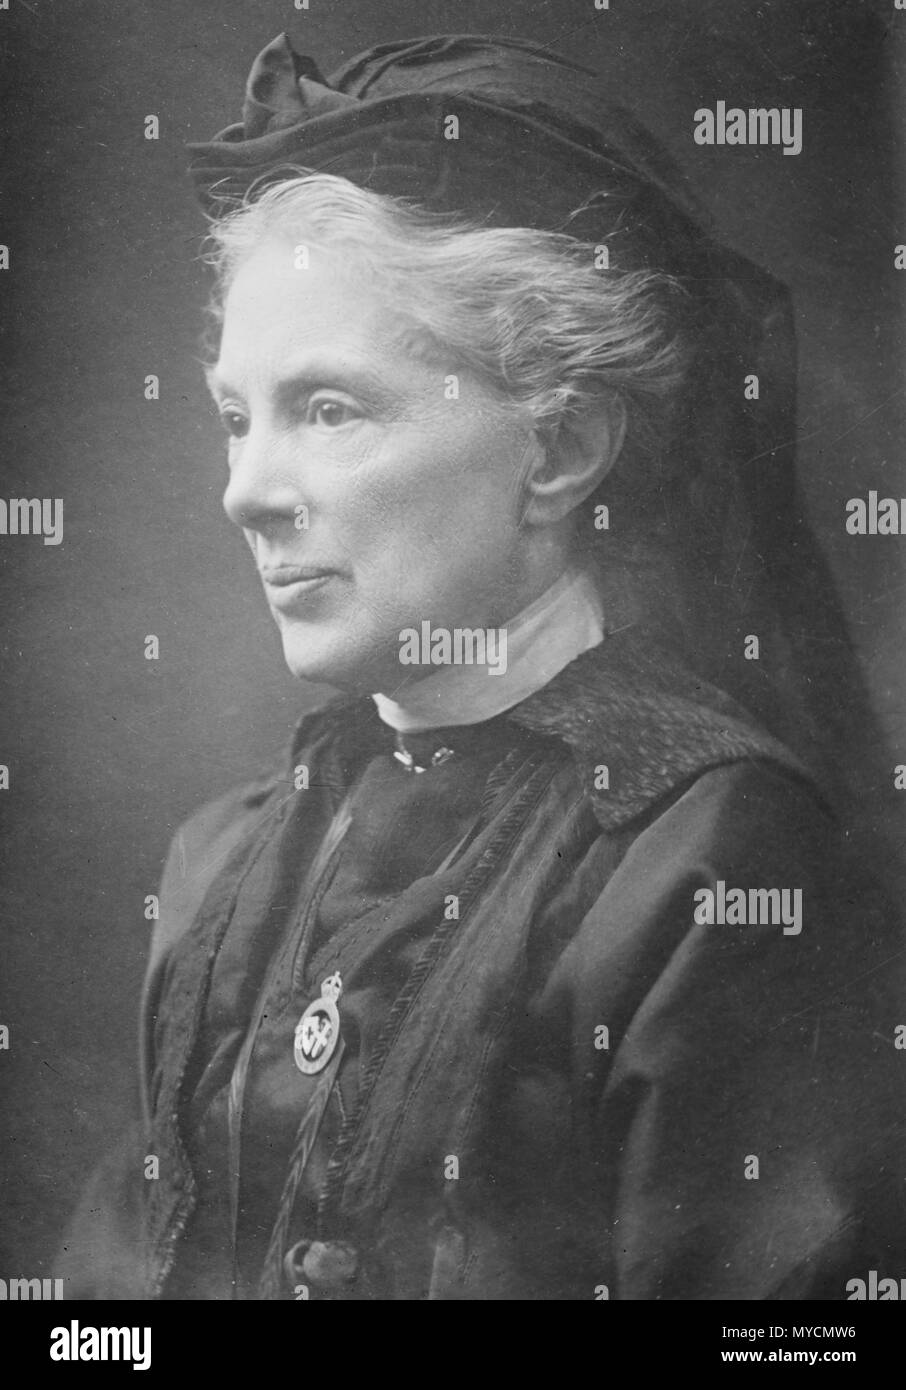 Margaret Elizabeth Leigh (1849 – 1945), later Margaret Elizabeth Leigh Child-Villiers, Countess of Jersey, English noblewoman, activist and writer. - Stock Image